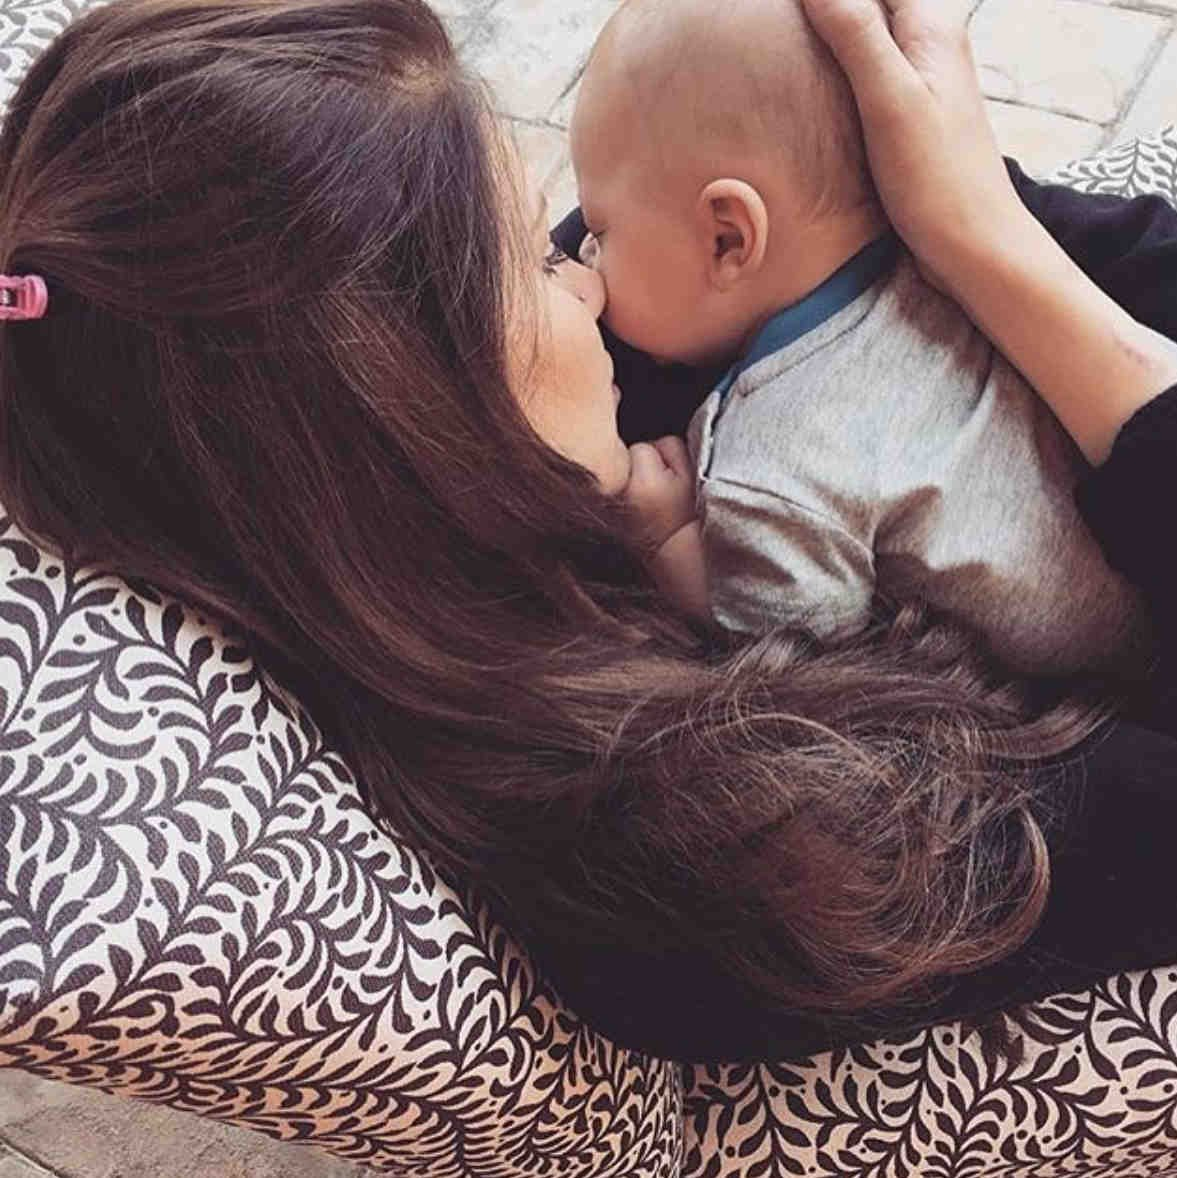 Briana Jungwirth responds to those absurd claims her baby with Louis Tomlinson is FAKE